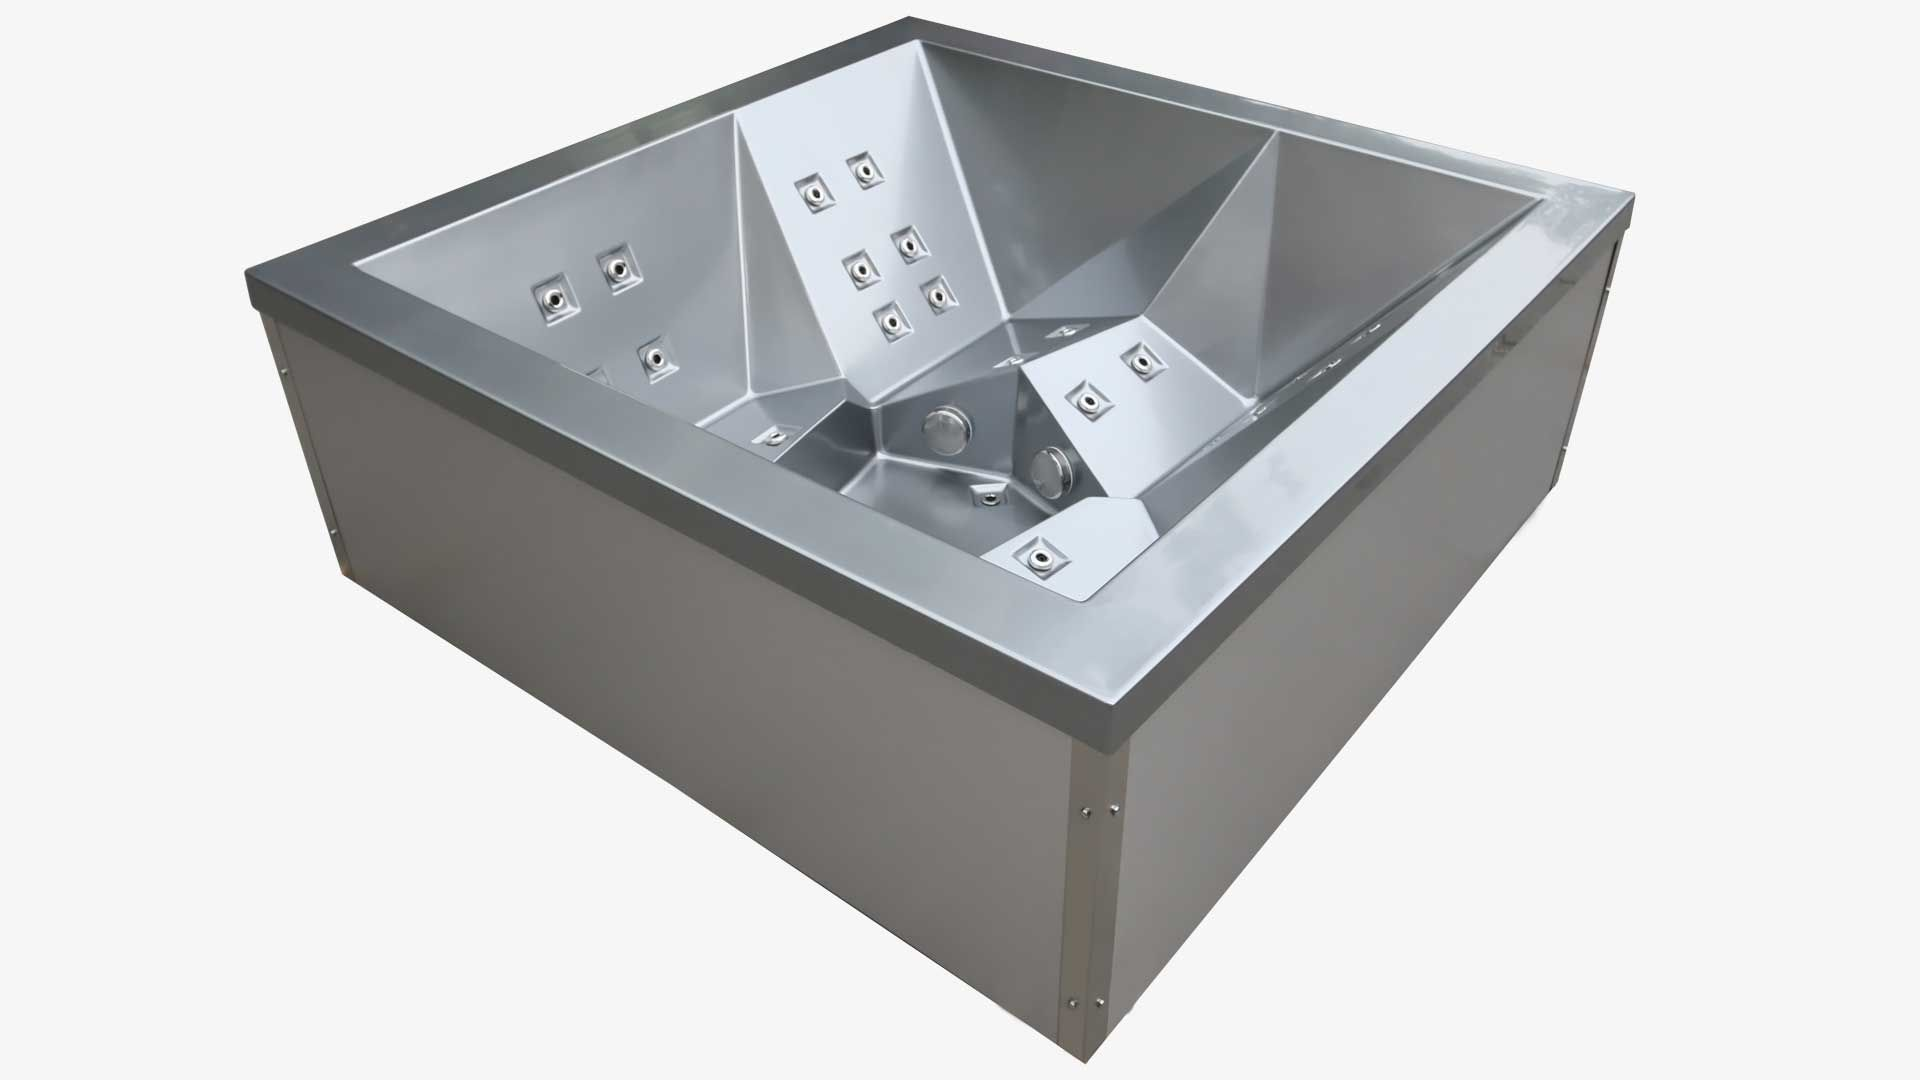 The Stealth Stainless Steal Hot Tub Jacuzzi Synonym In 2020 Aussenwhirlpool Design Ideen Whirlpool